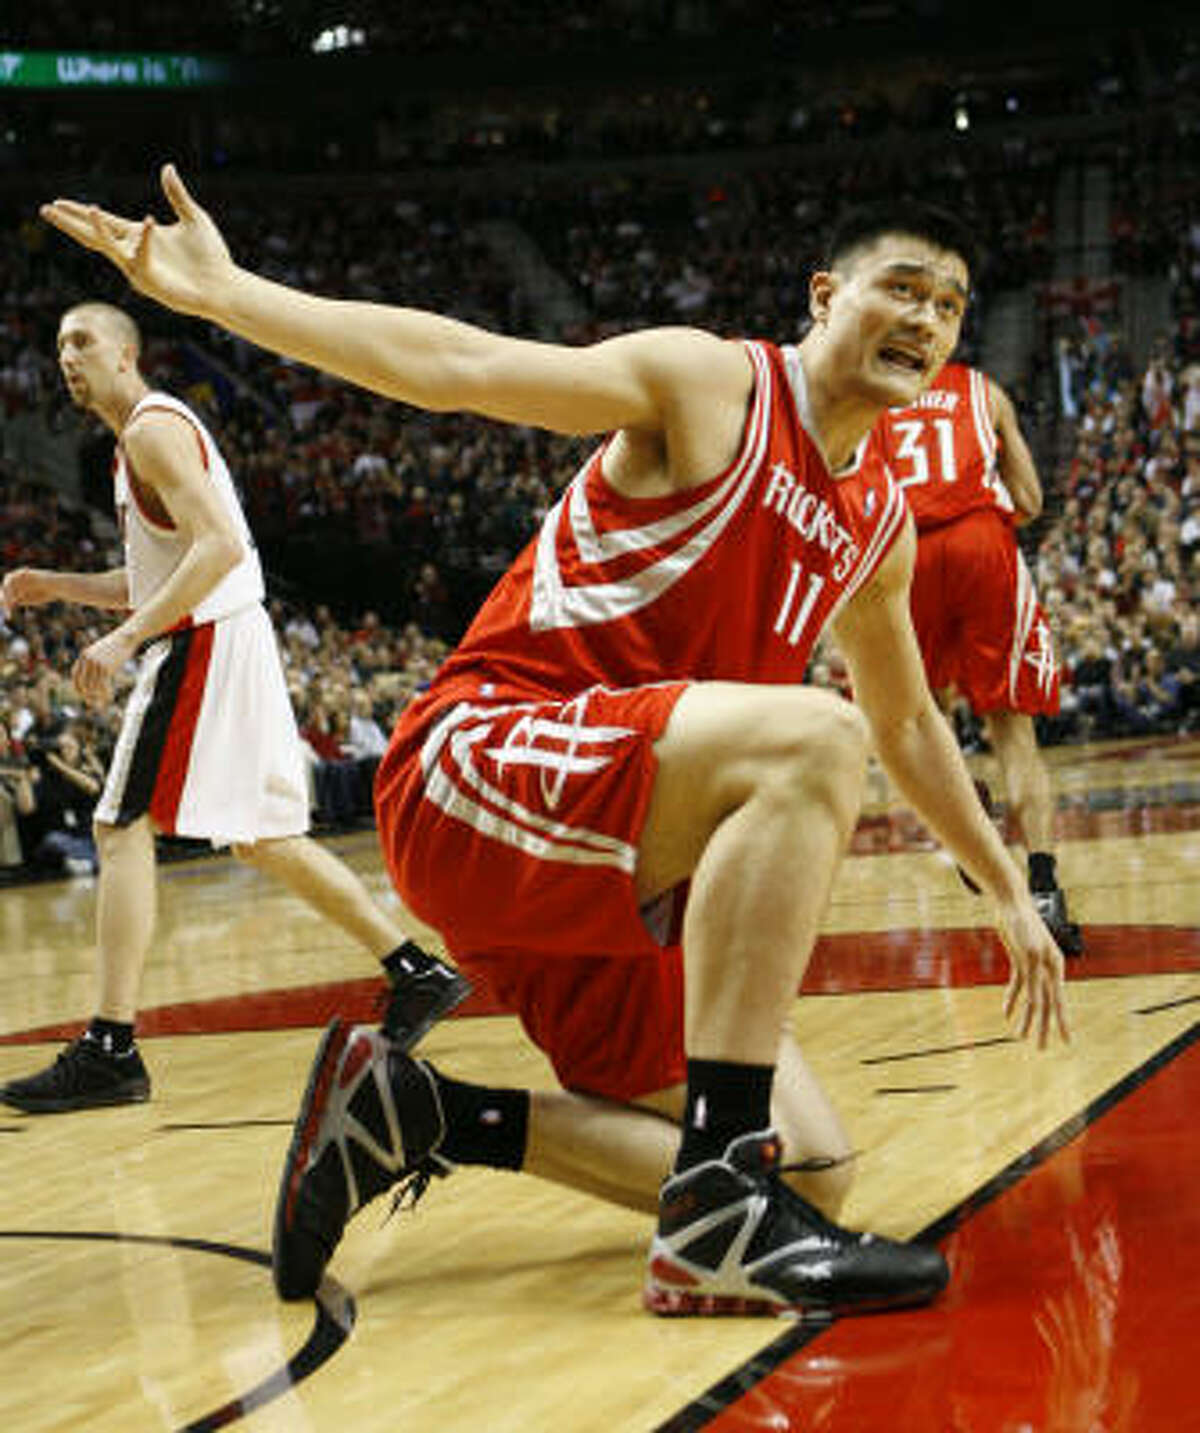 Rockets center Yao Ming (11) appeals to the ref after being knocked down by Portland Trail Blazers center Joel Przybilla (10) in the first quarter.